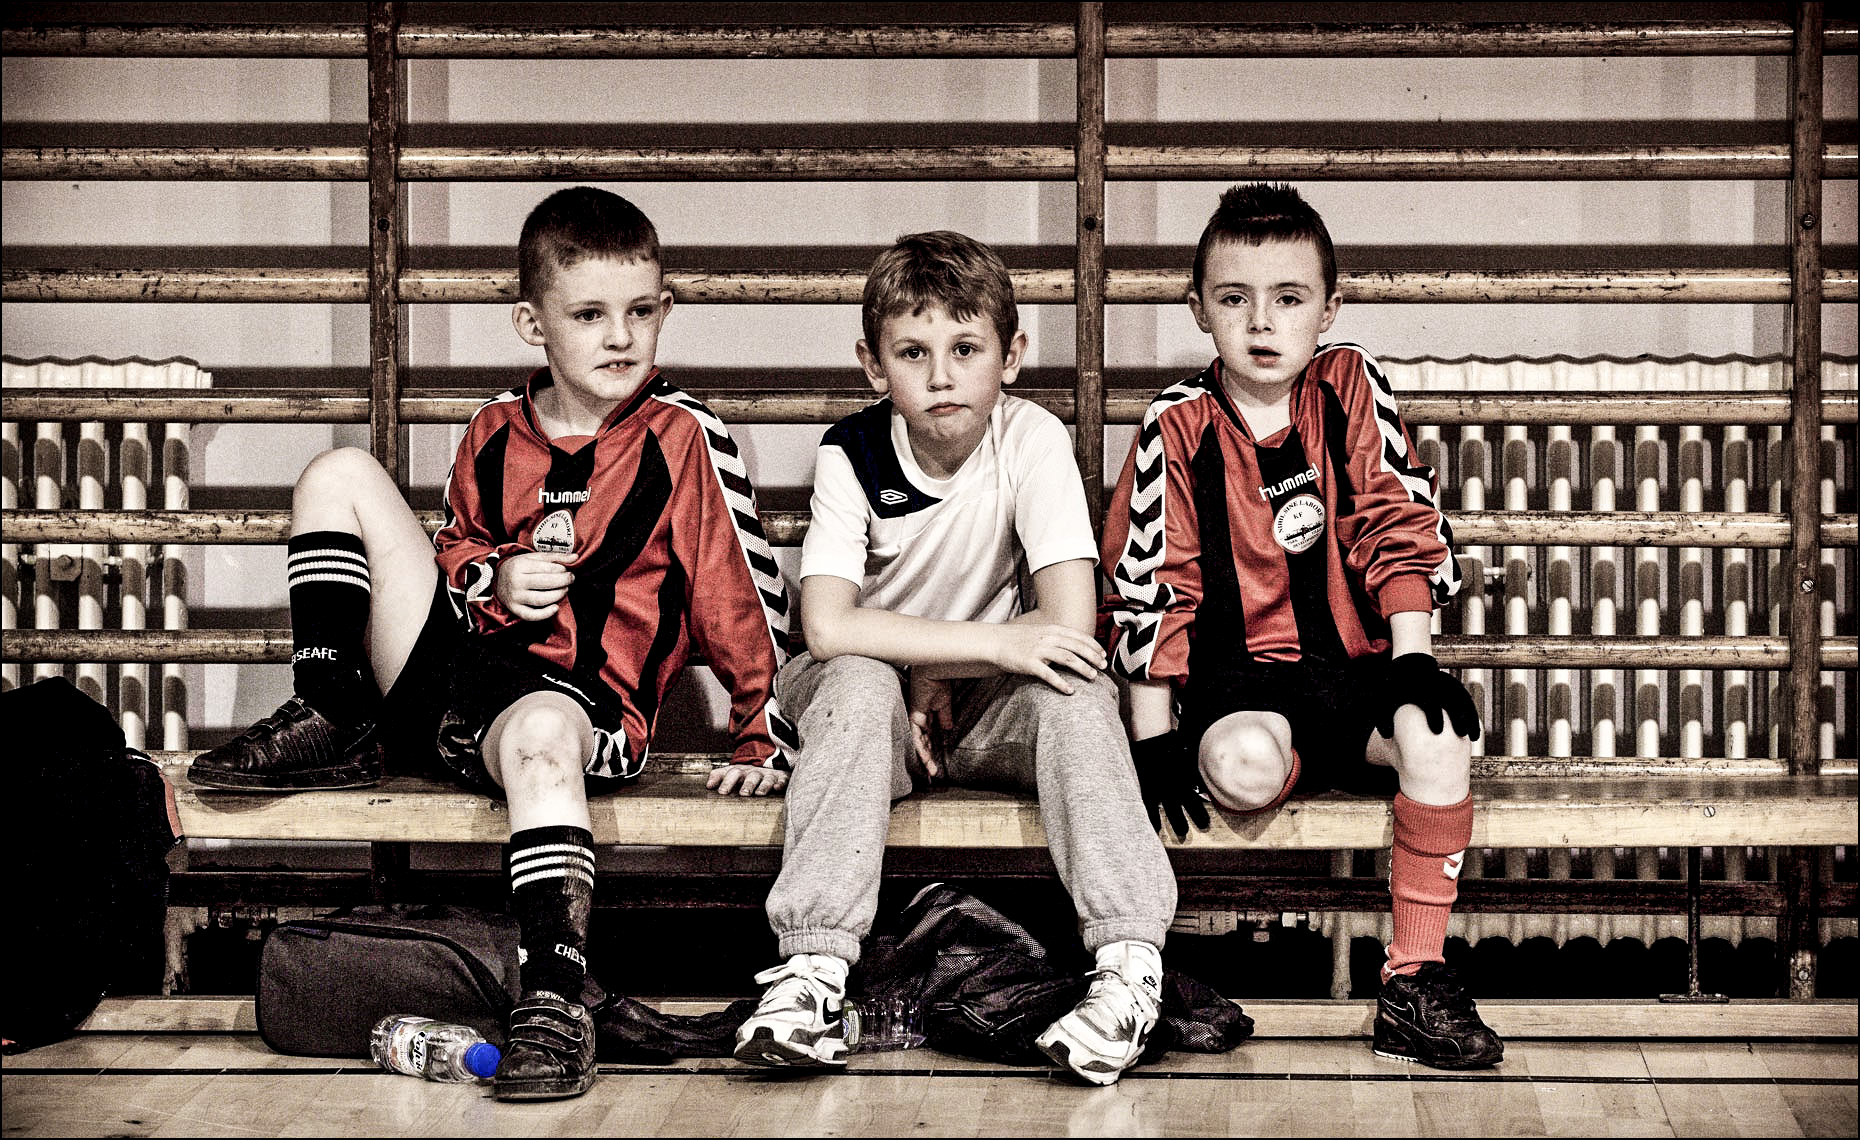 41 youth soccer football charity Scotland  ©Paul Hampton Photographer Glasgow